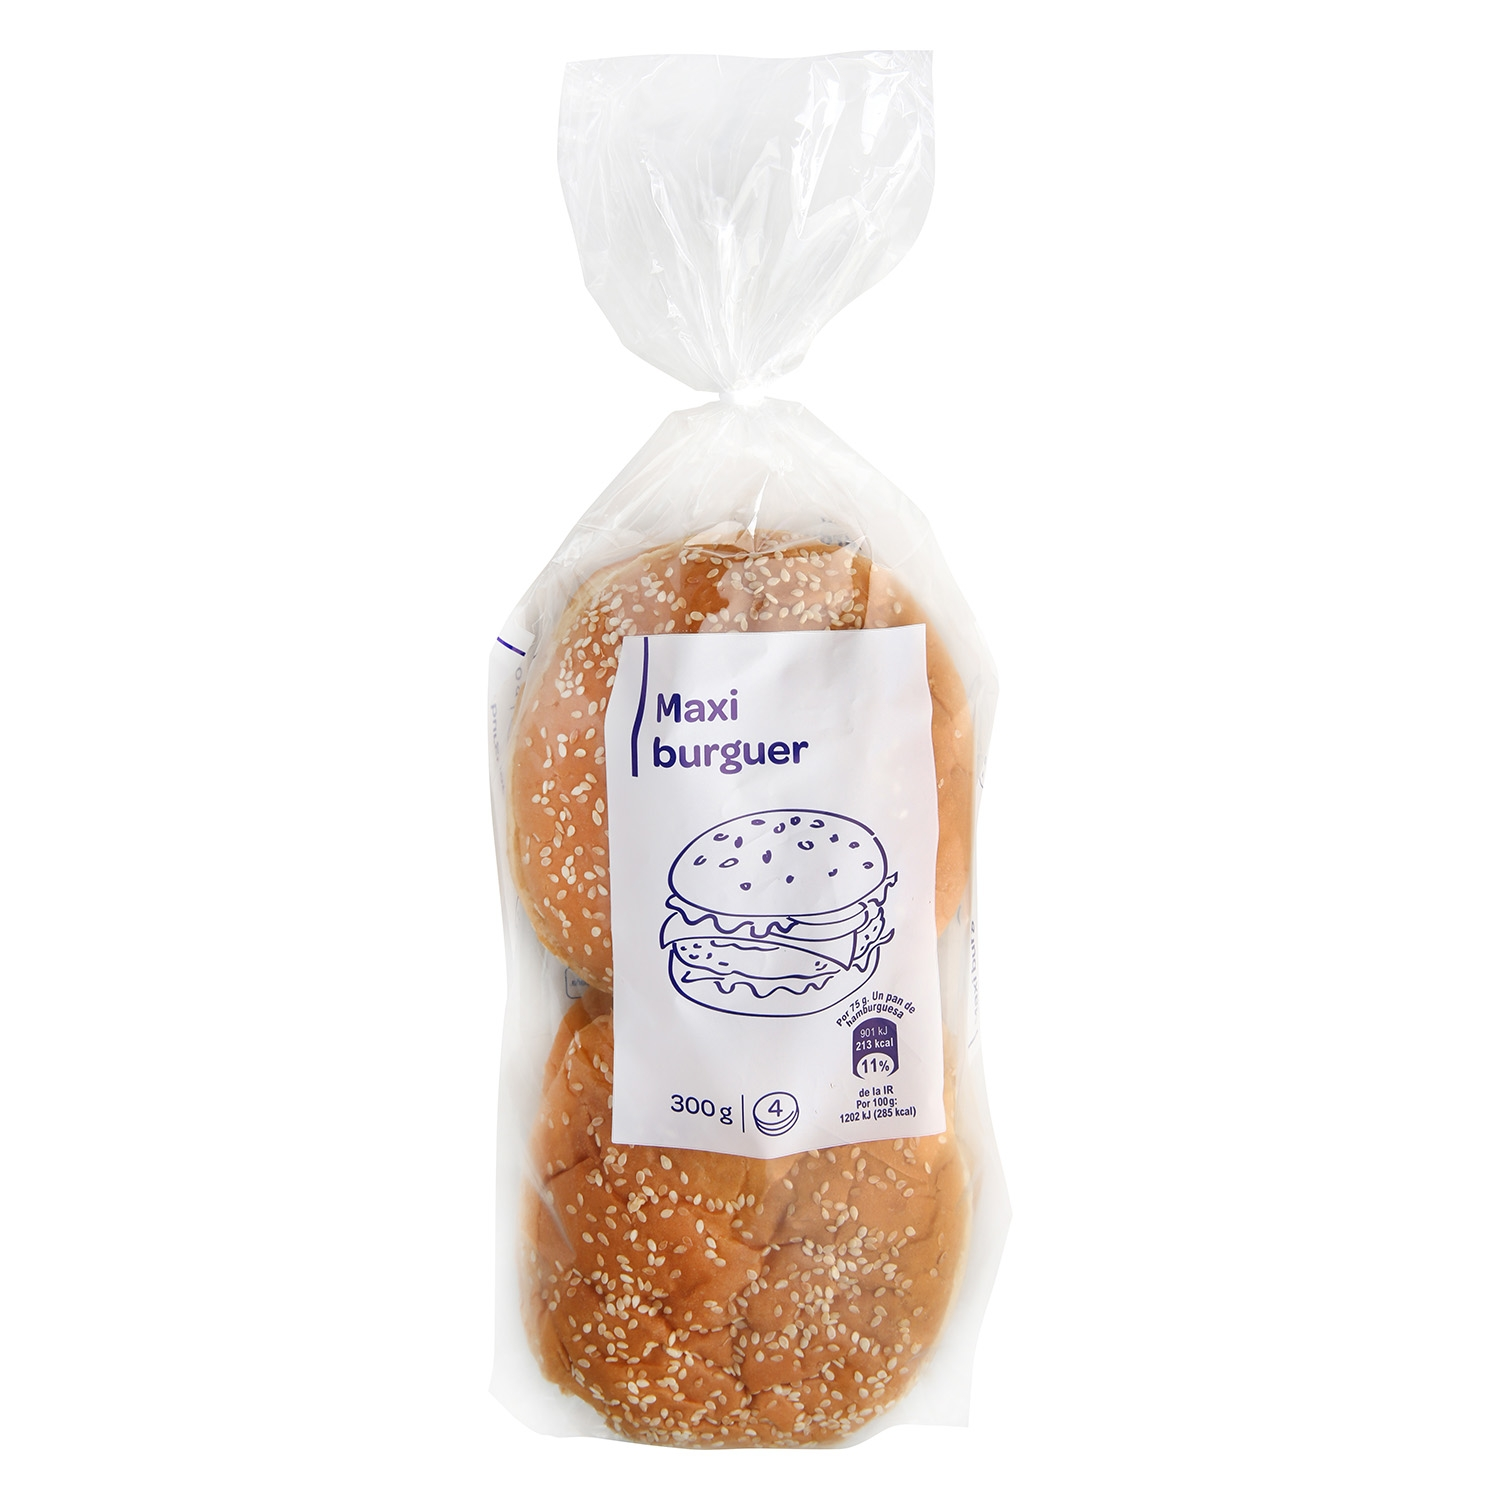 Pan maxi burguer Producto blanco 300 g.